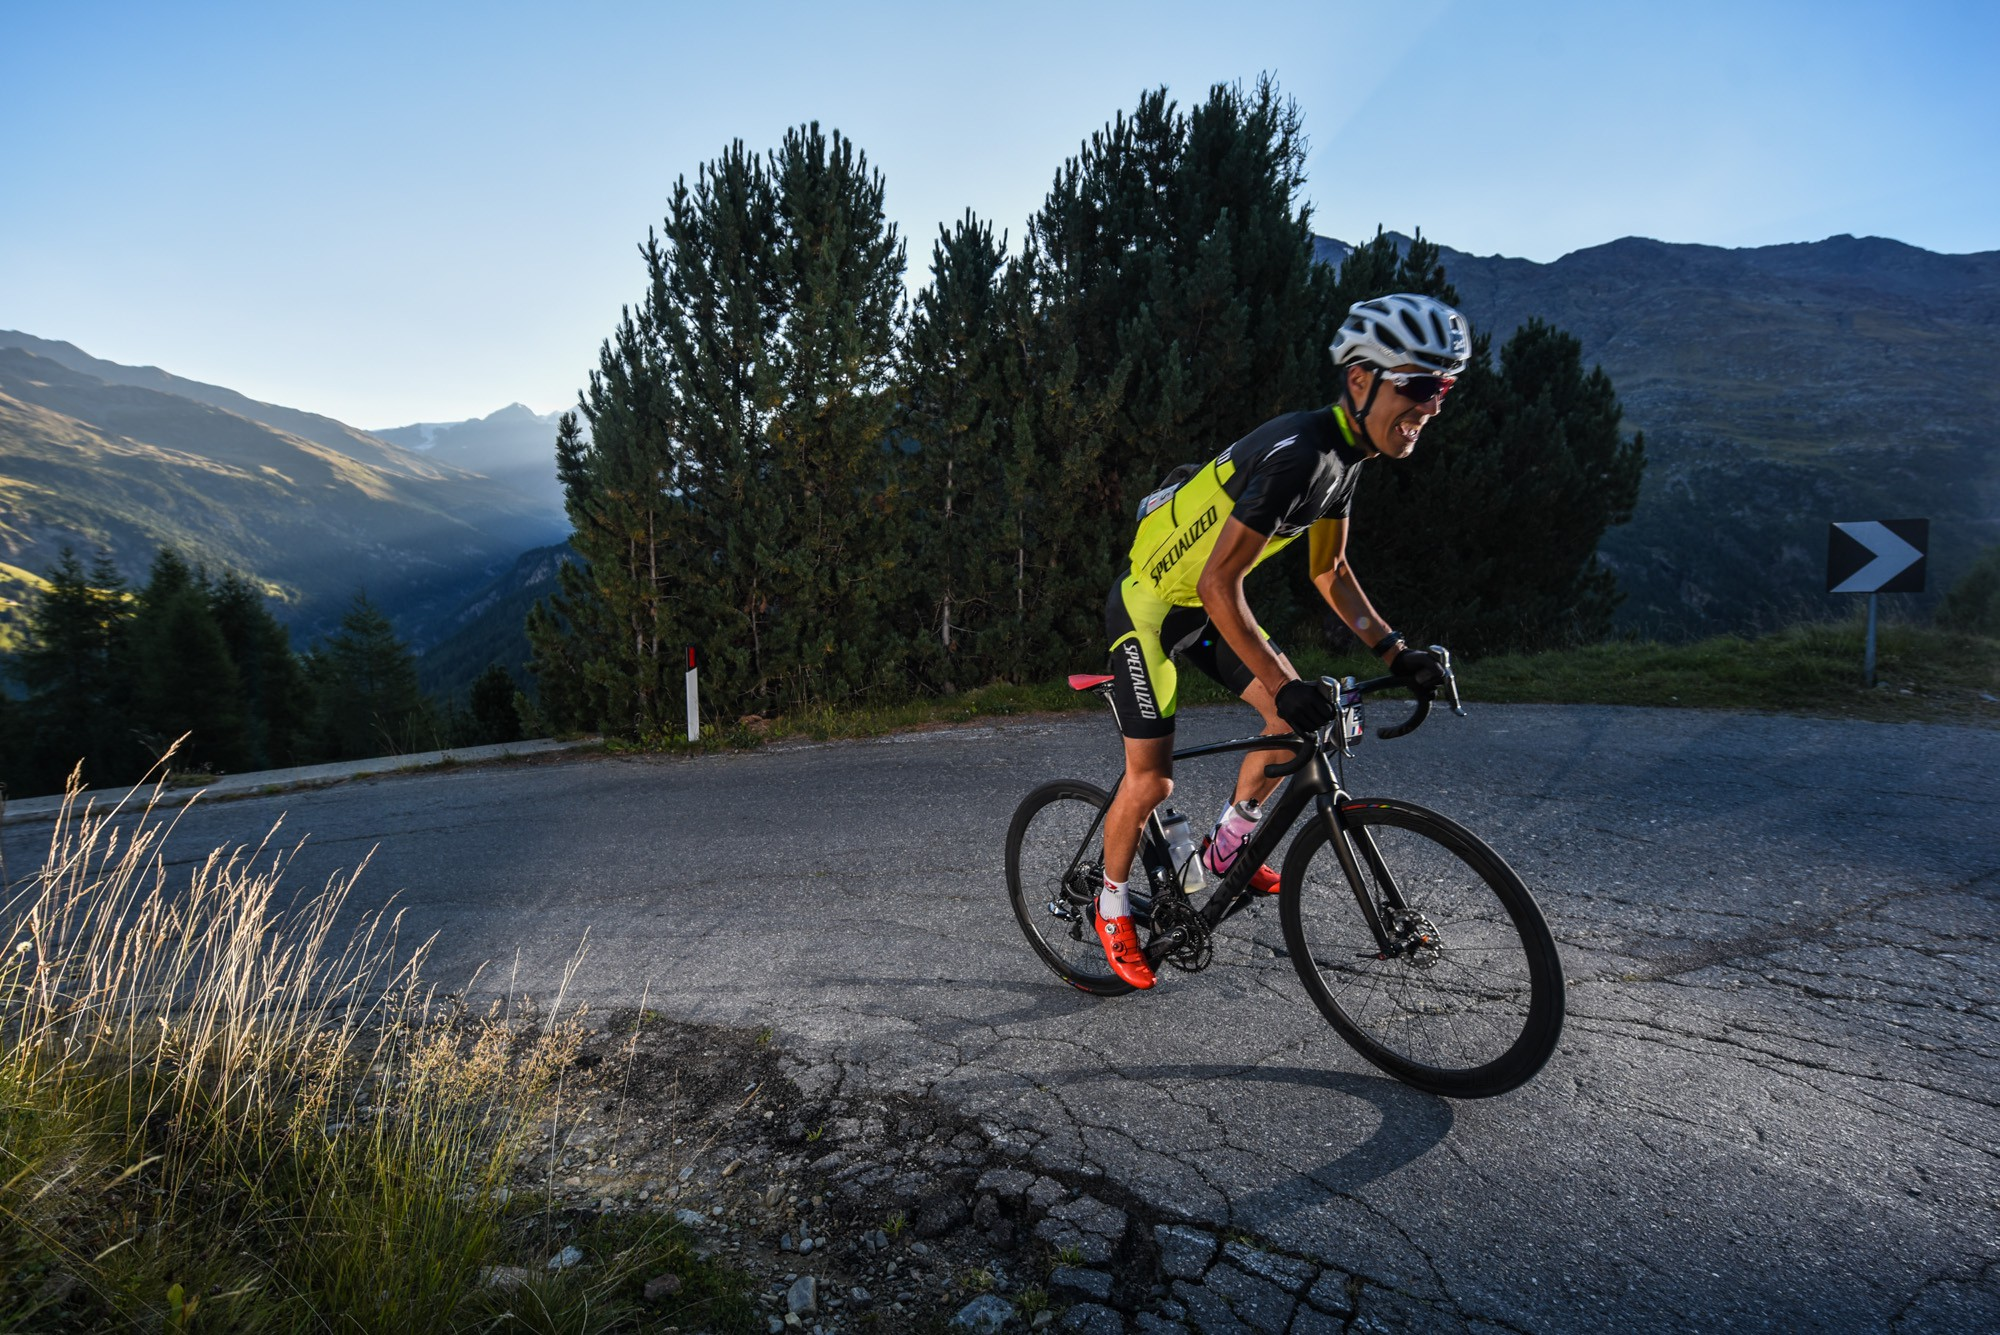 nicolas raybaud specialized dans l'ascension du passo di giau